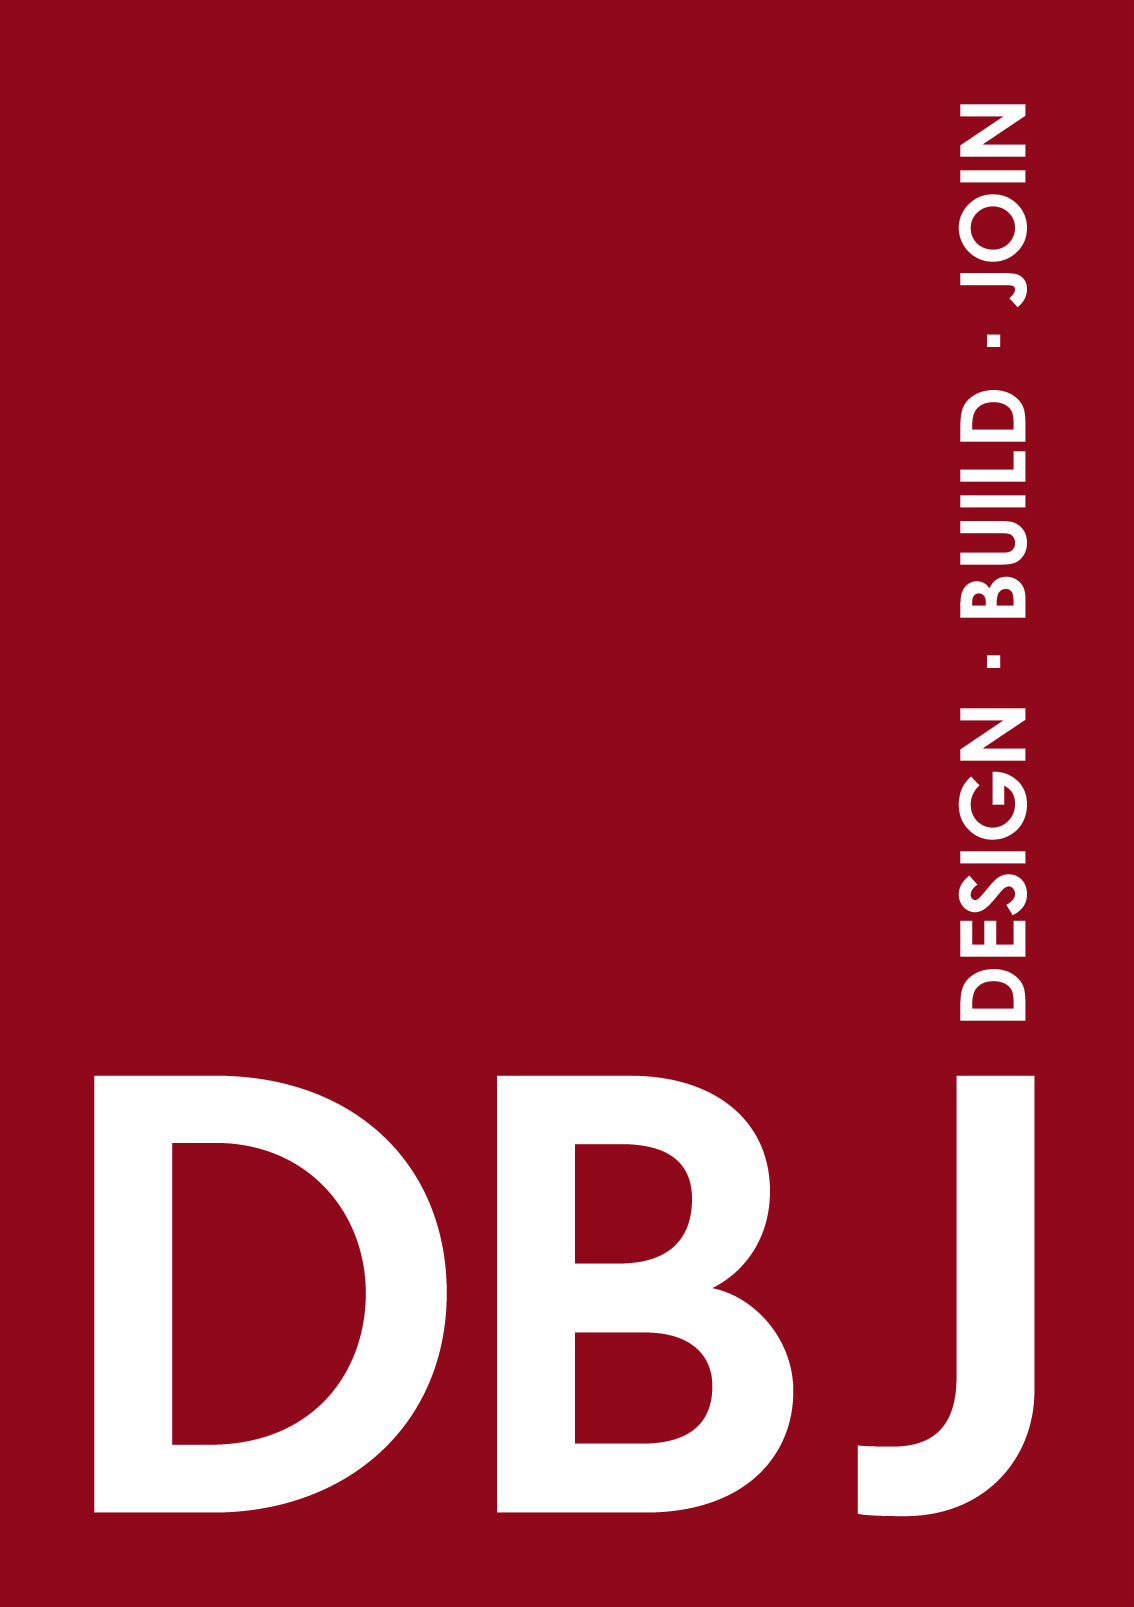 DBJ Furniture Ltd | terms and conditions